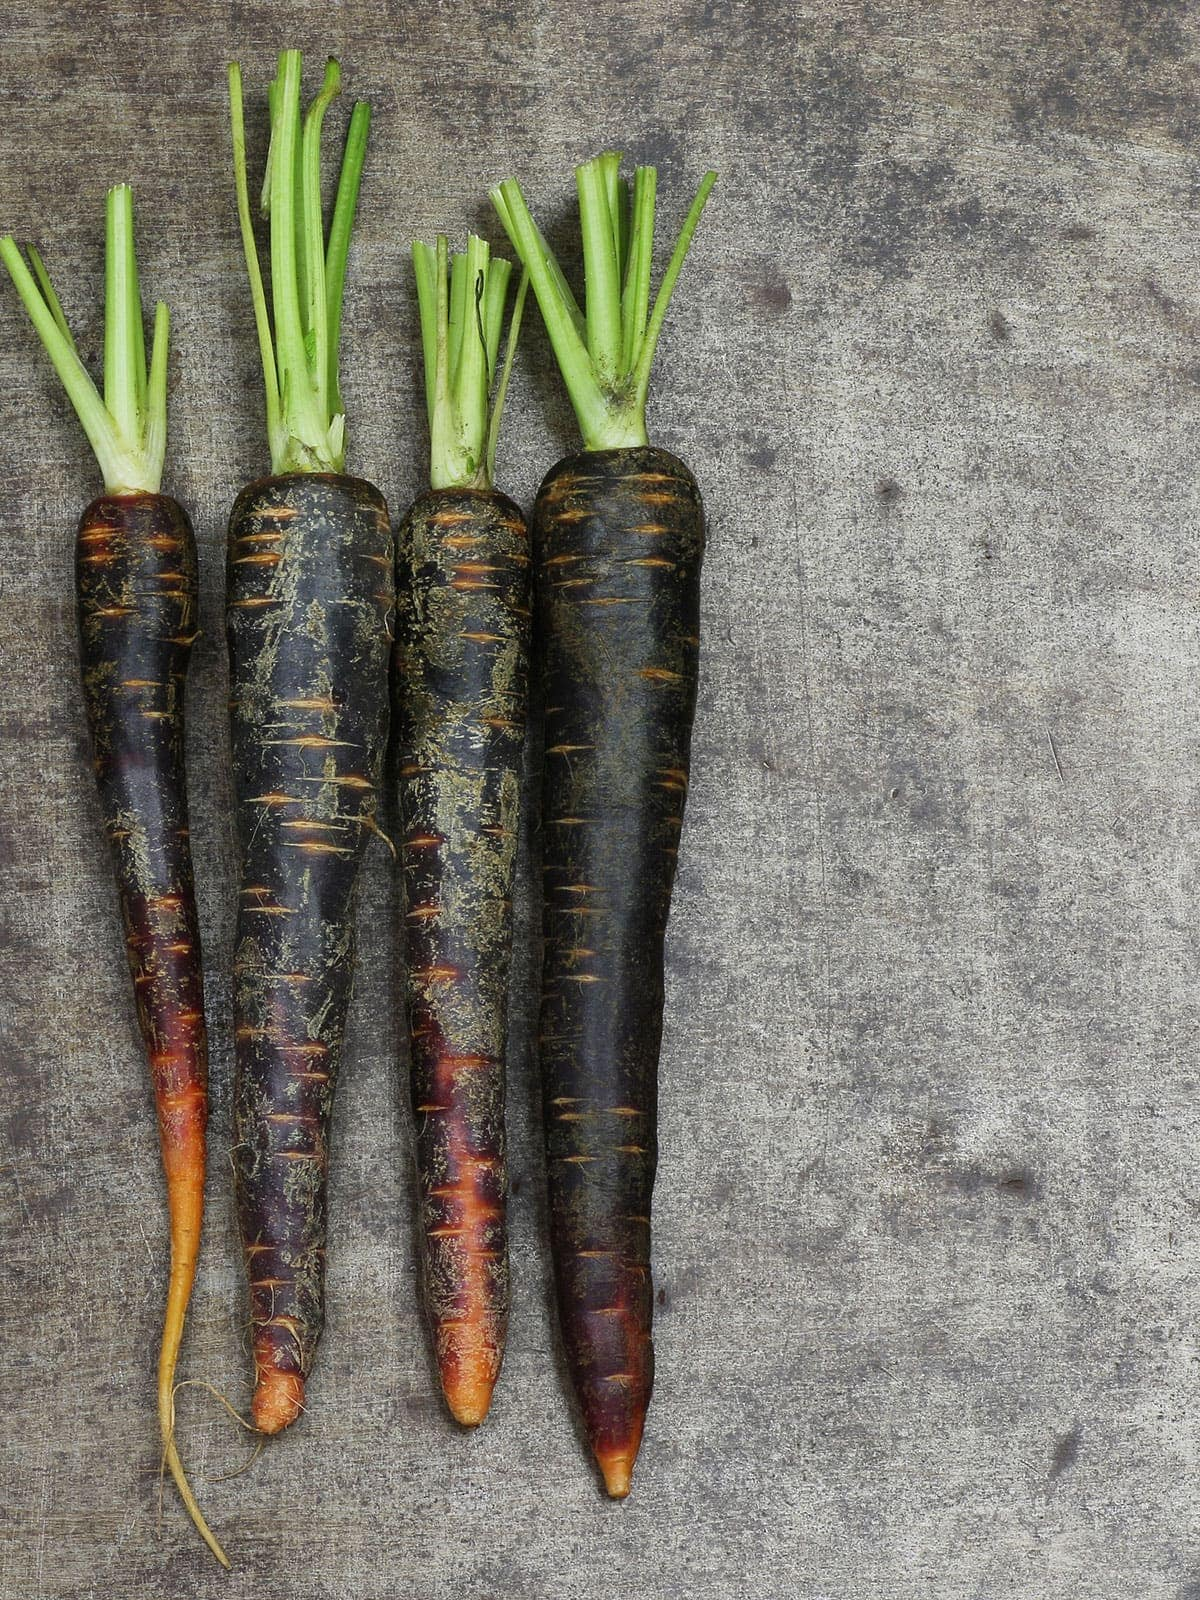 over lay of 4 black carrots on a grey background